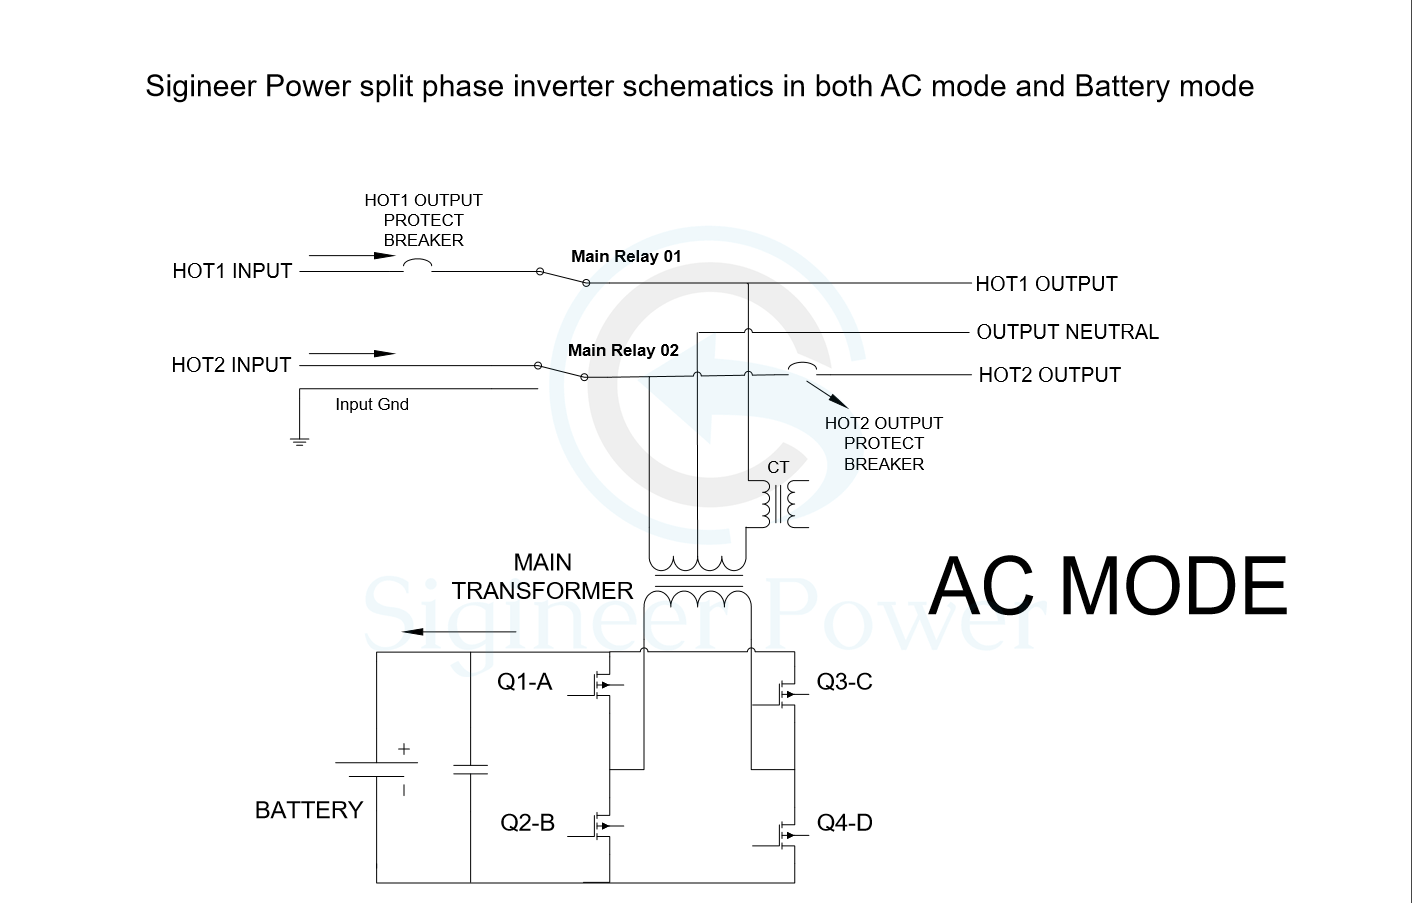 wiring diagram ac split inverter 99 toyota camry phase schematic of and mode